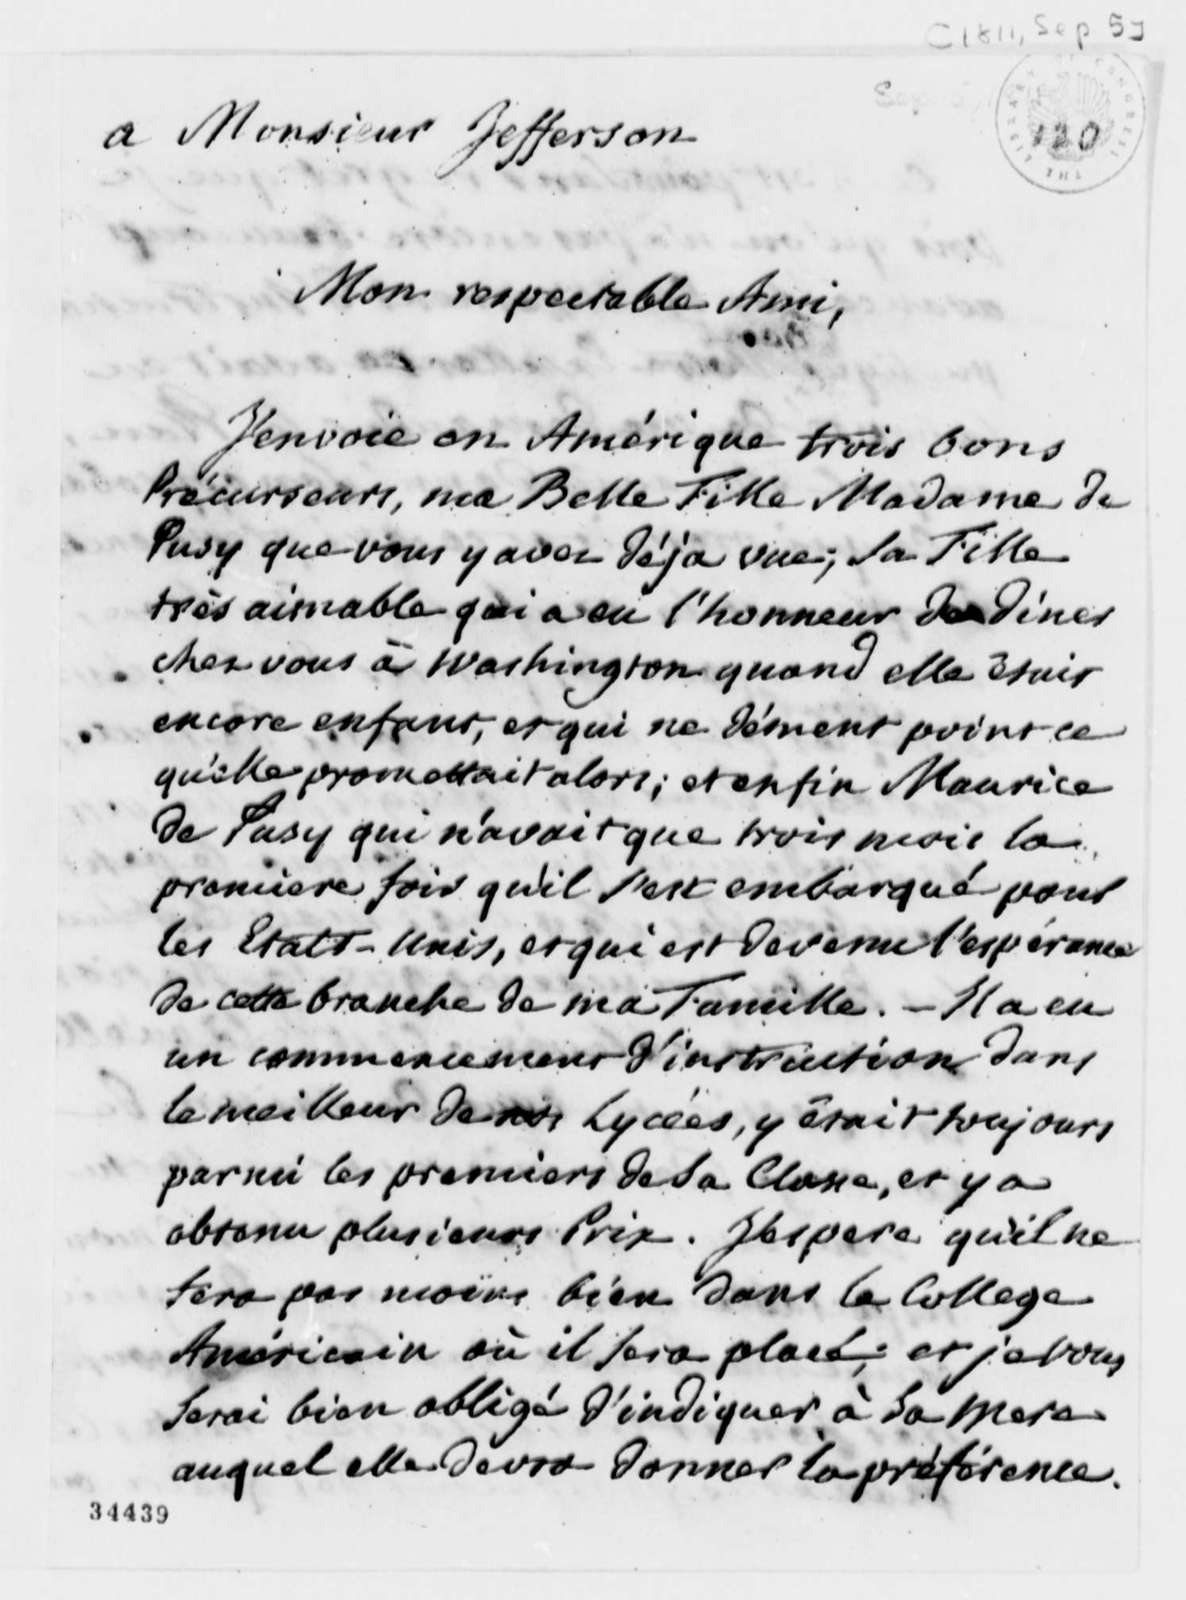 Pierre S. Dupont de Nemours to Thomas Jefferson, September 5, 1811, in French